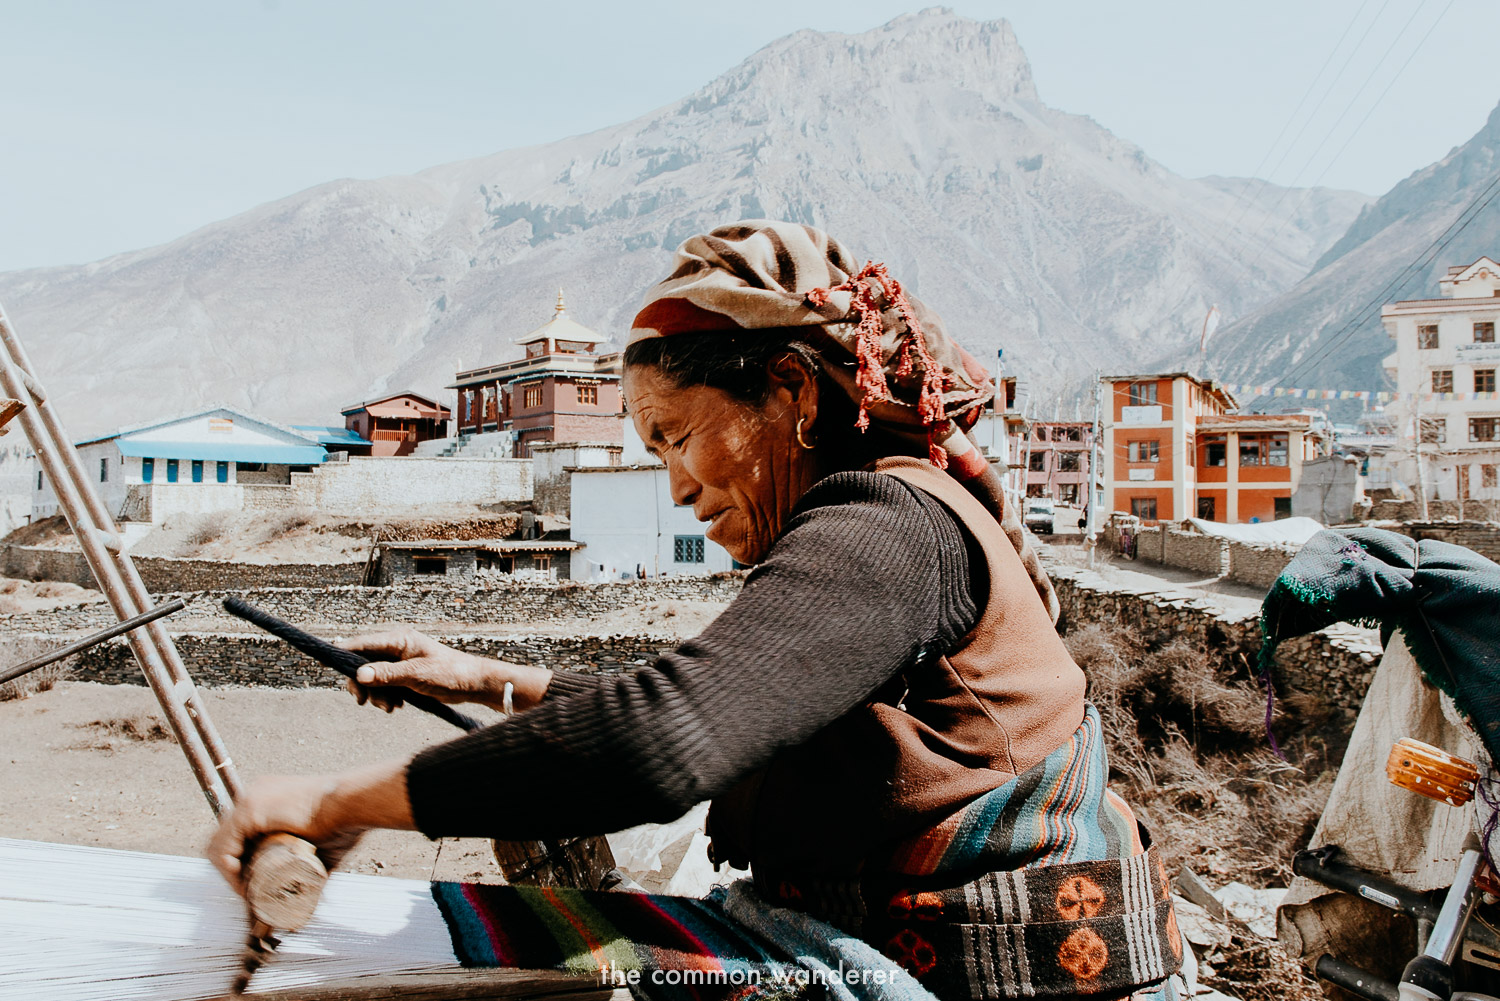 A local women makes a traditional scarf in Muktinath, Annapurna Circuit Nepal